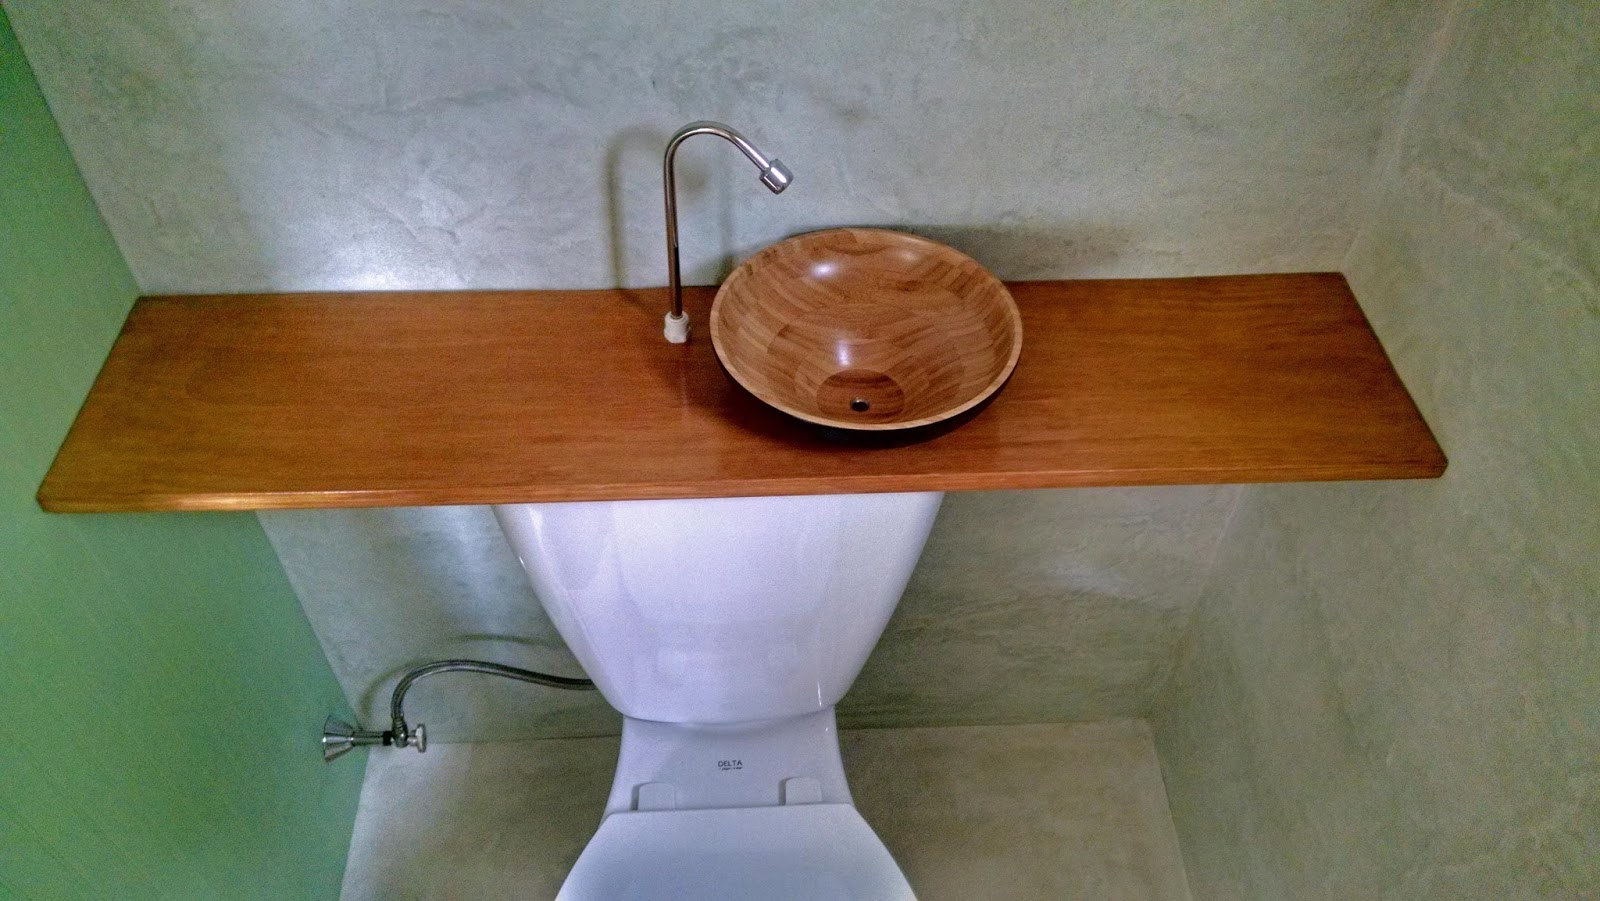 Dumb Home - Centreville MD: Toilet Hand-Wash Basin